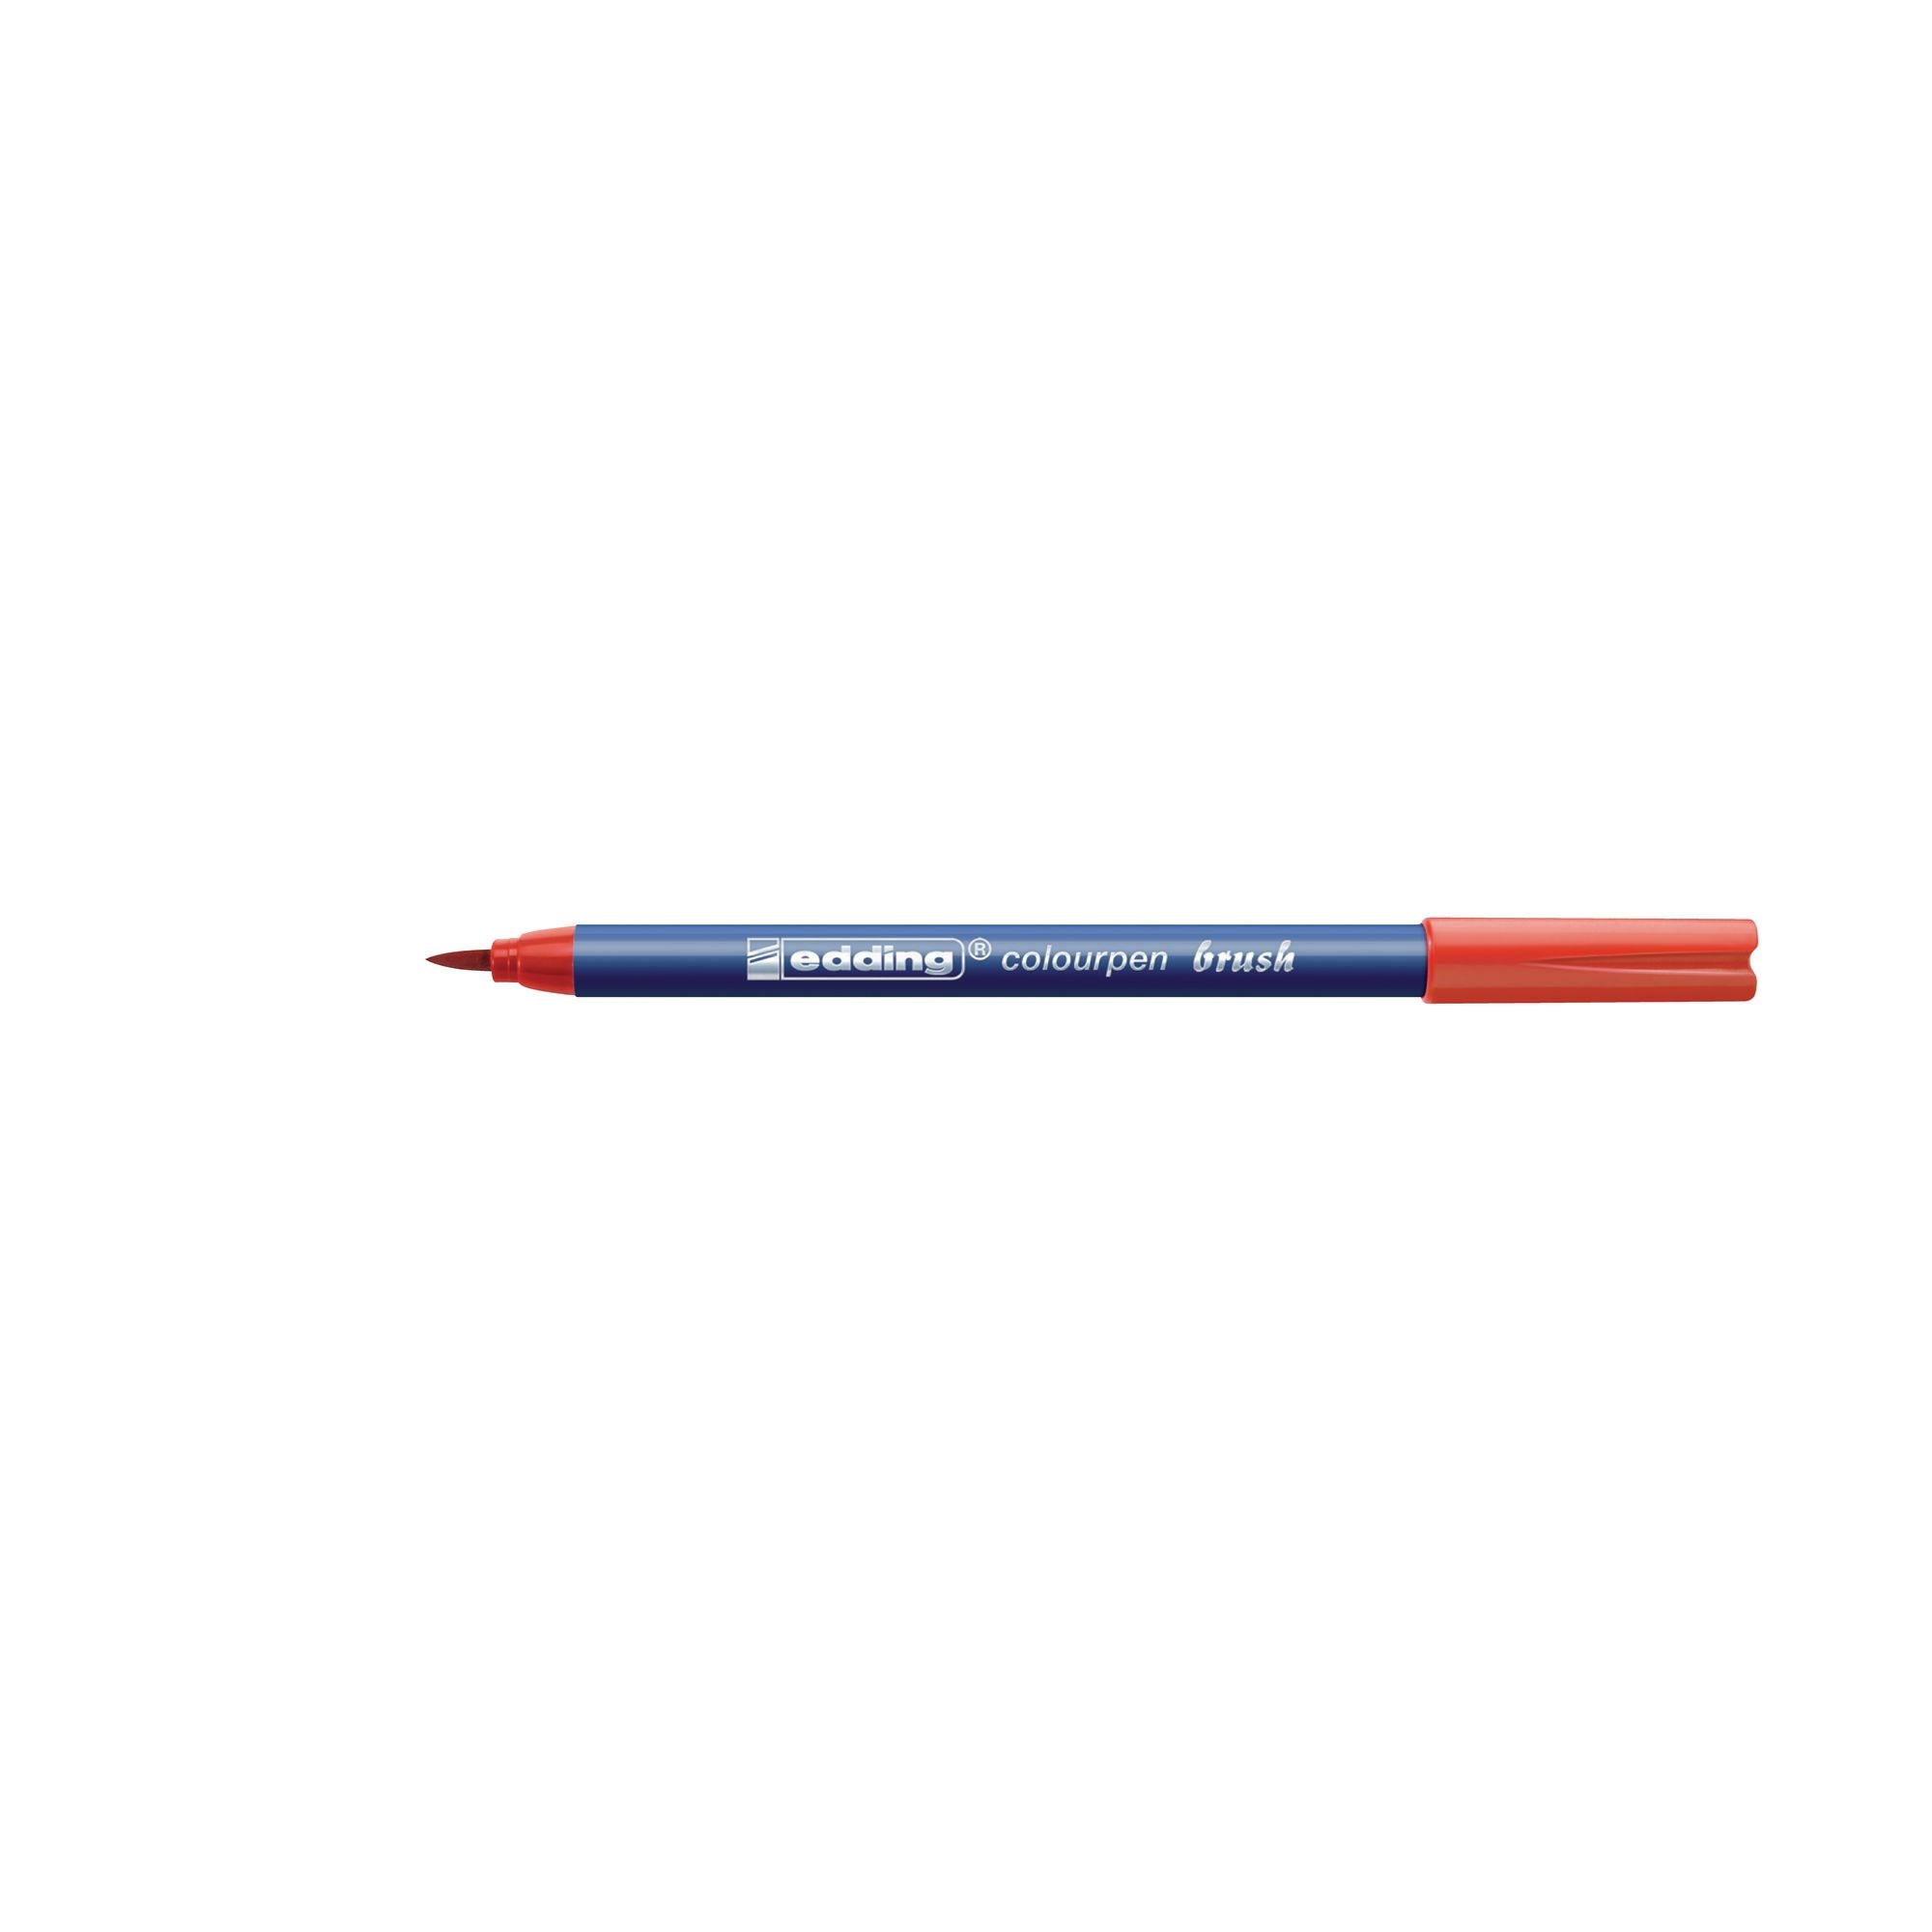 Edding Colour Pen Brush Pk12